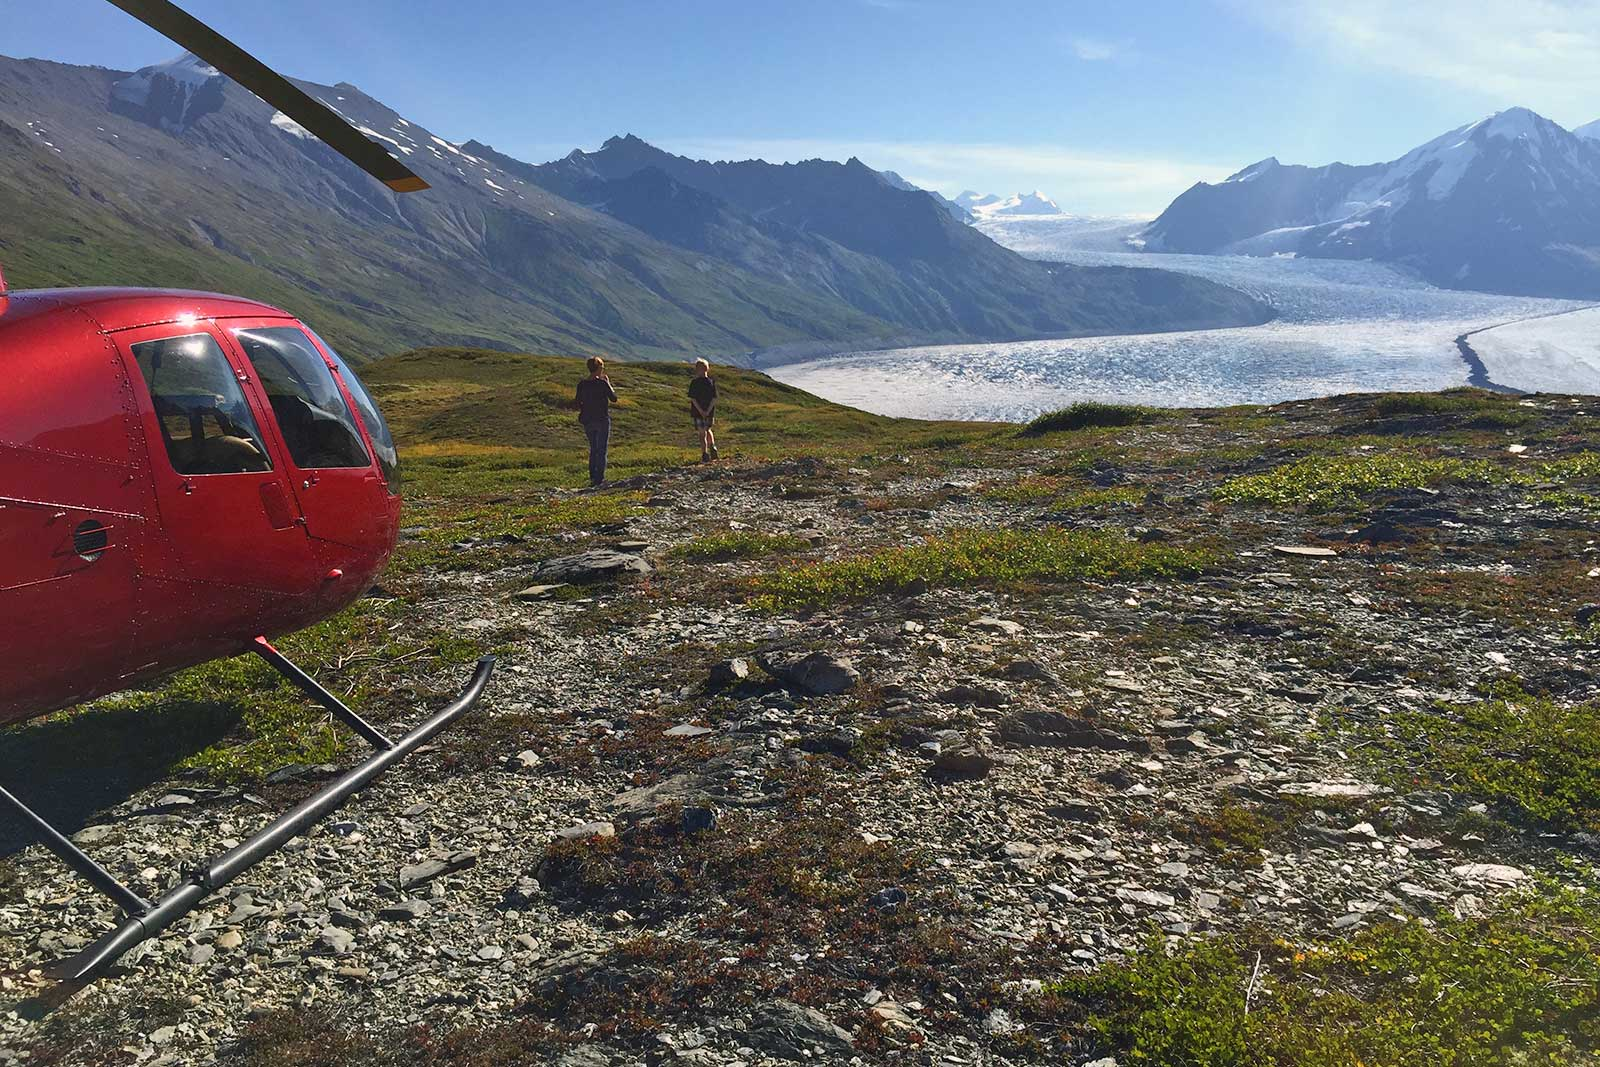 Alaska Heli Hiking